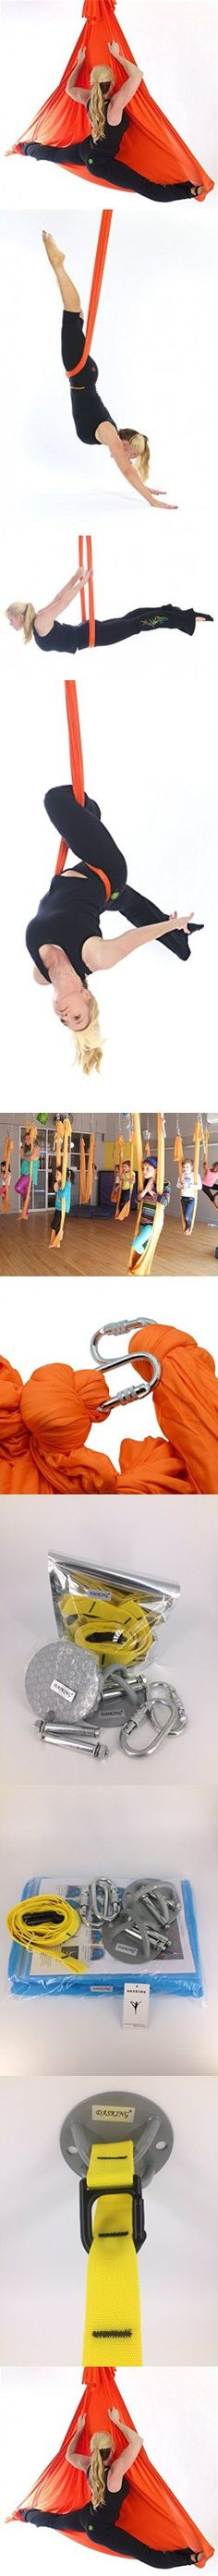 dasking 5m premium aerial silks equipment aerial yoga hammock set antigravity yoga aerial silk yoga set safe deluxe aerial kit   products dasking 5m premium aerial silks equipment aerial yoga hammock set      rh   pinterest